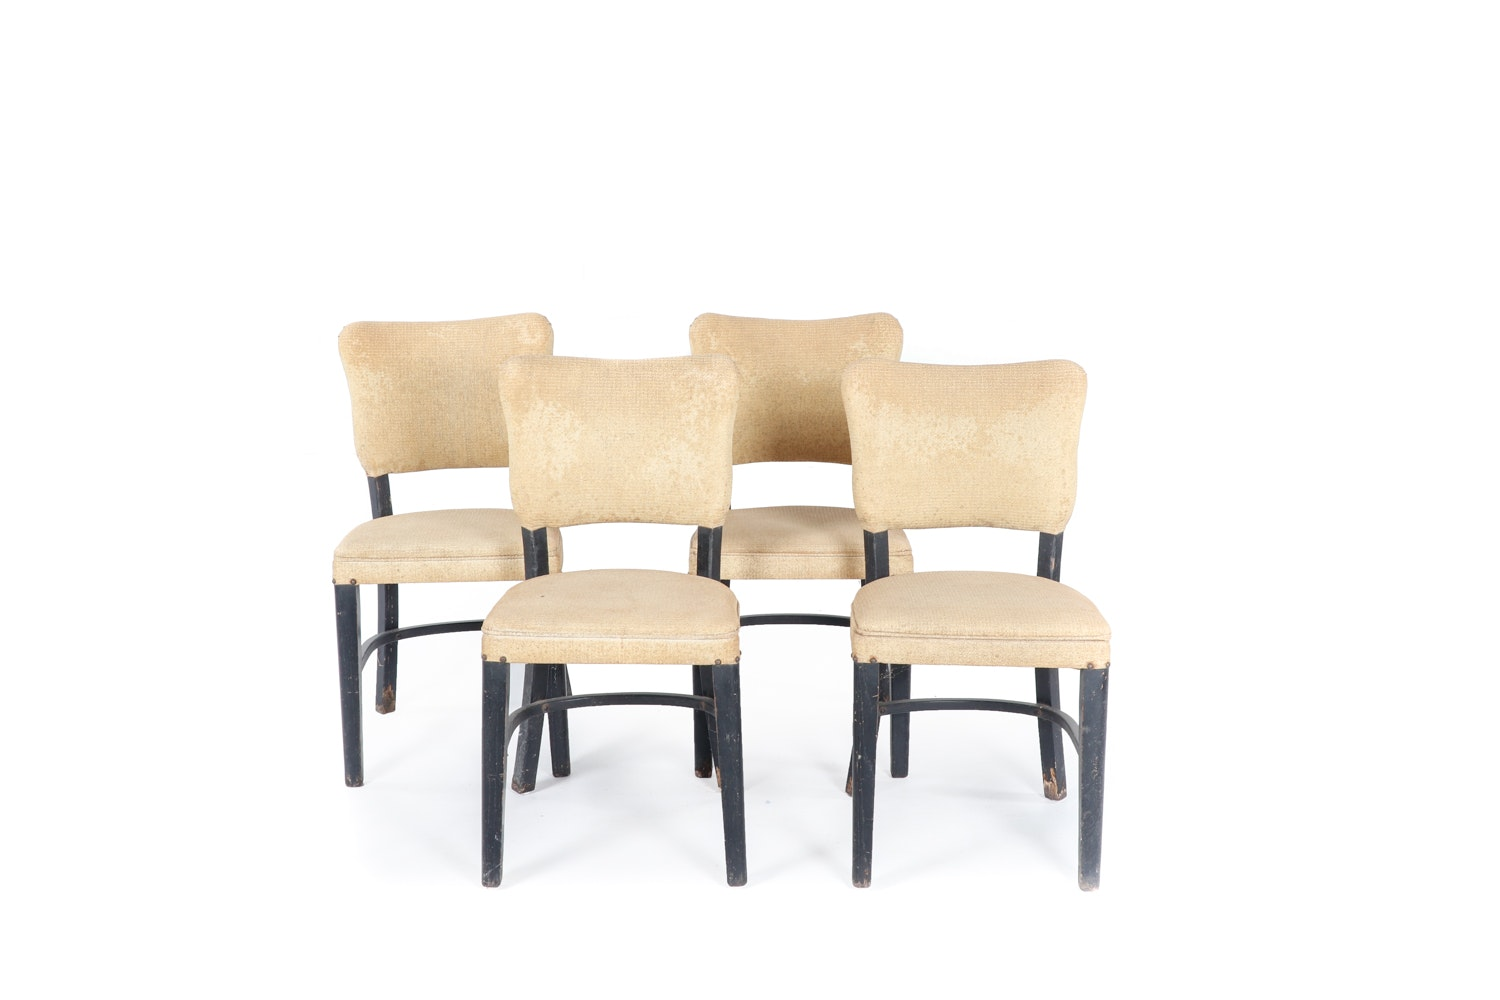 Vintage Vinyl Upholstered Dining Chairs